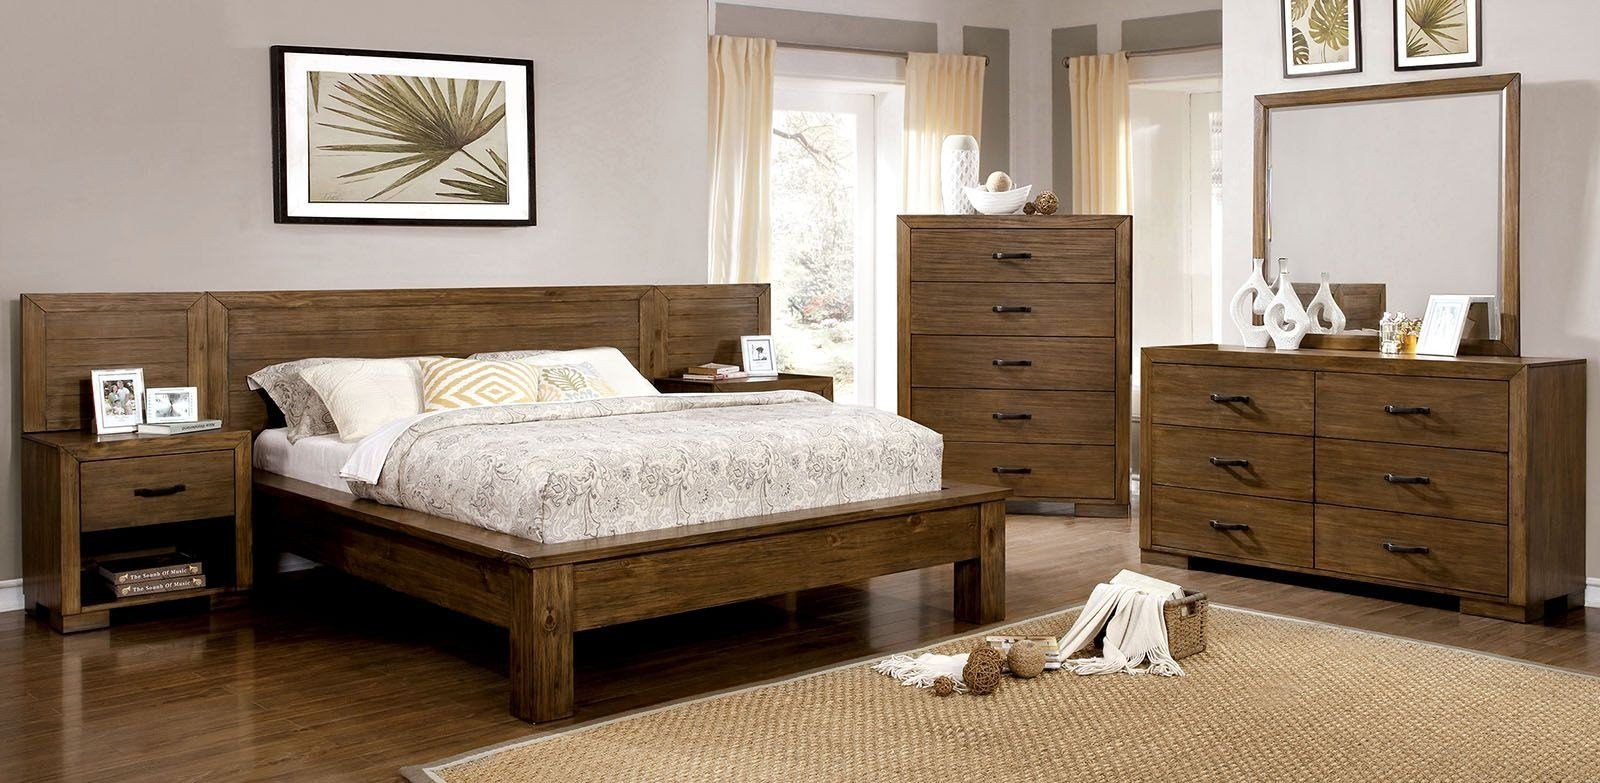 Best Bairro Reclaimed Pine Wood Bedroom Set Cm7250Q Furniture Of America With Pictures